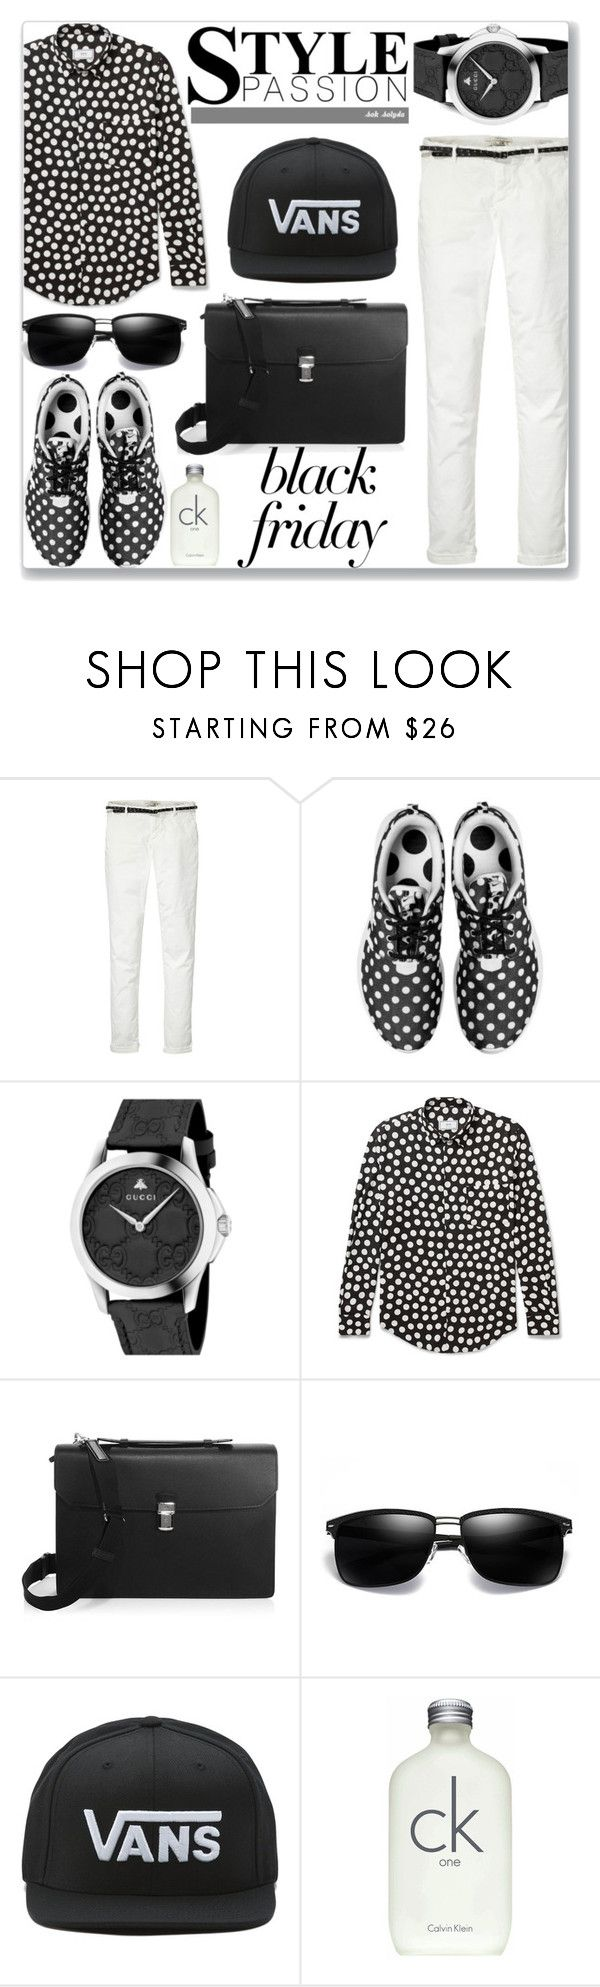 """Steal Those Deals - Black Friday: 22/11/17"" by solyda-sok ❤ liked on Polyvore featuring Maison Scotch, NIKE, Gucci, Dunhill, Vans, Calvin Klein, men's fashion and menswear"